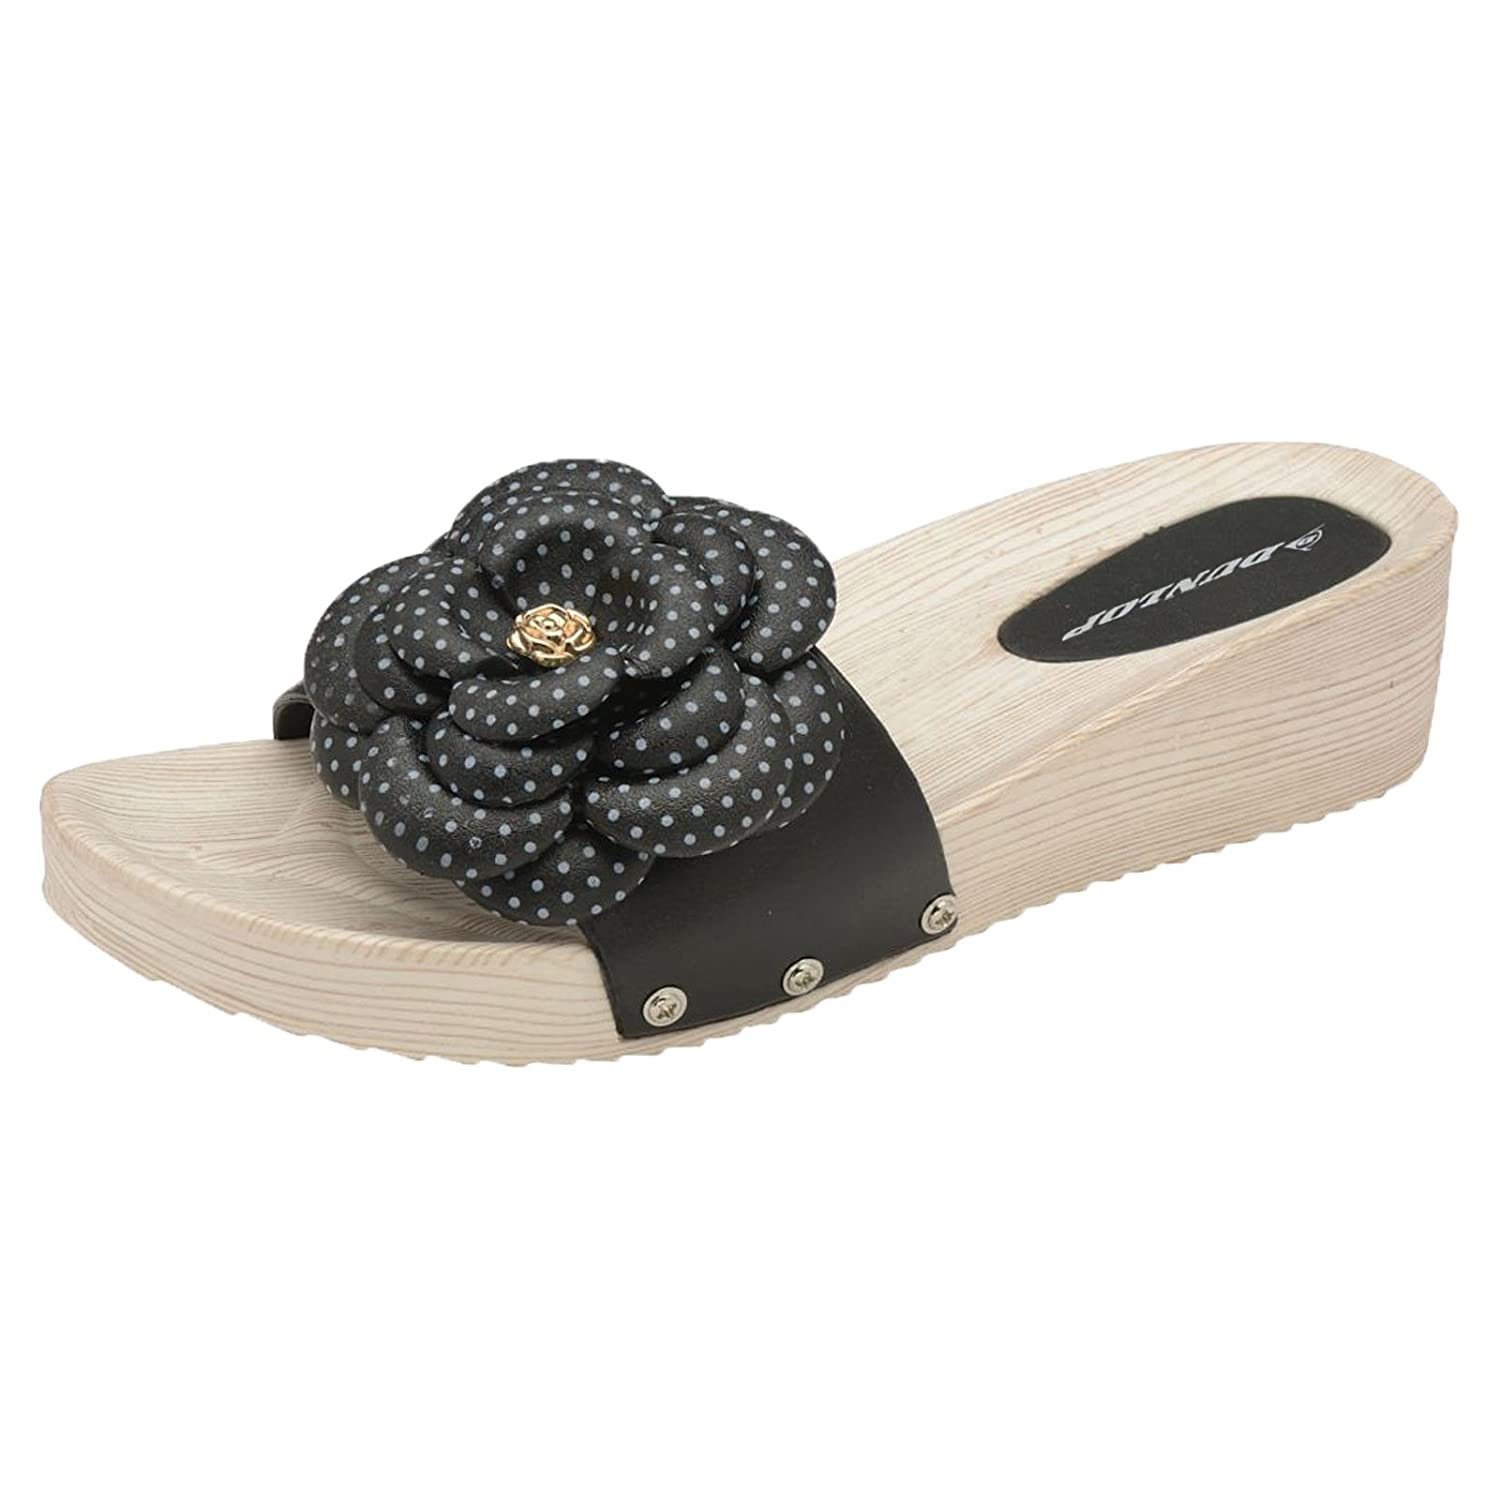 0a8d1925cadf7 Dunlop Ladies Low Wedge Womens Summer Fit Flip Flop Toe Post Crystal Sandals  Mules  Amazon.co.uk  Shoes   Bags